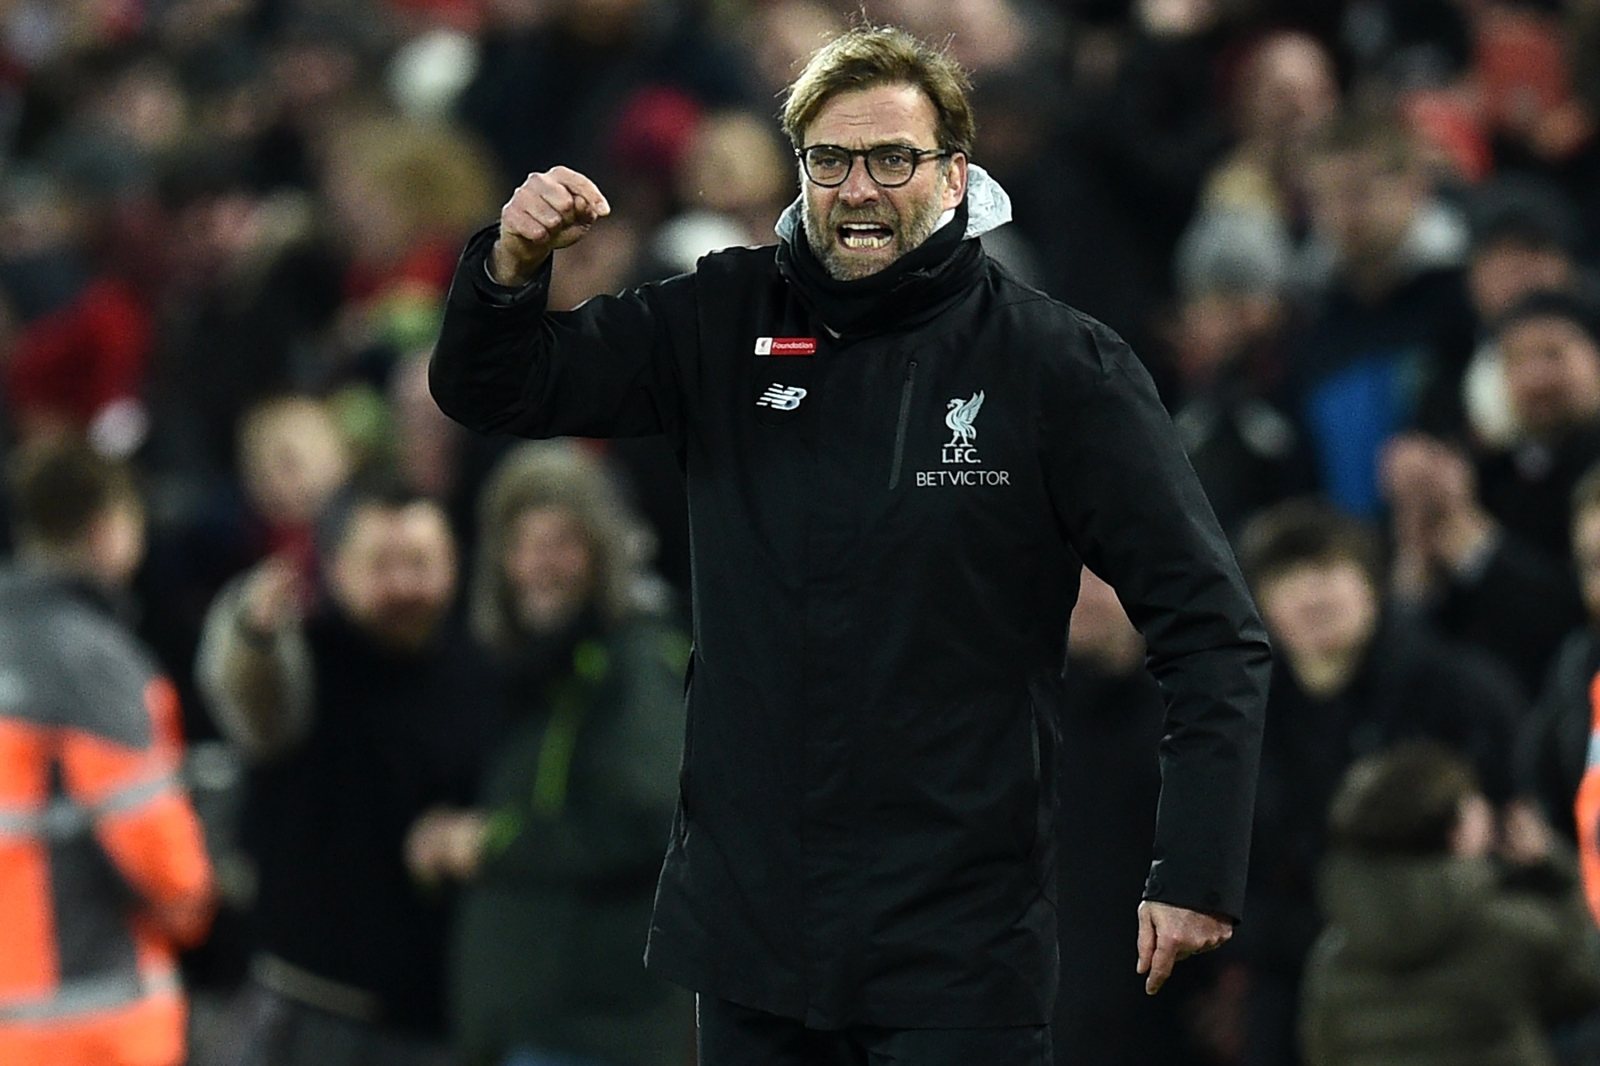 Jurgen Klopp says he feels 'maximum responsibility' for Liverpool's loss